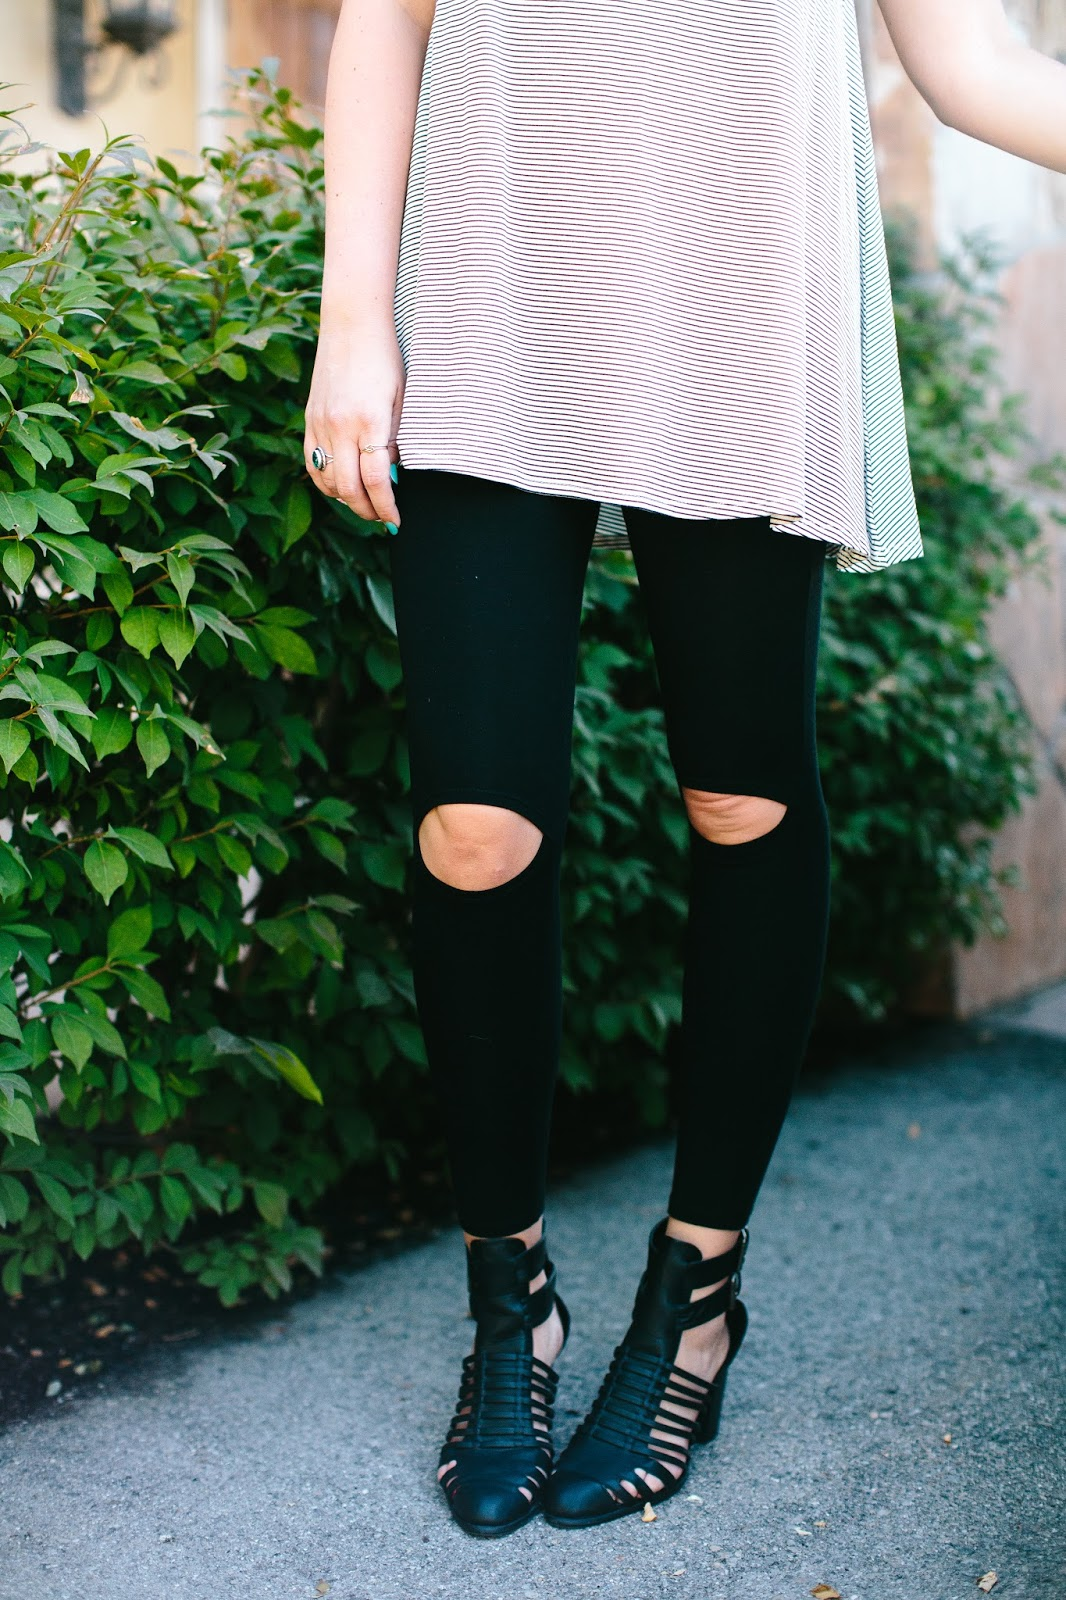 Sidney Clark Designs, Ripped Leggings, Utah Fashion Blogger